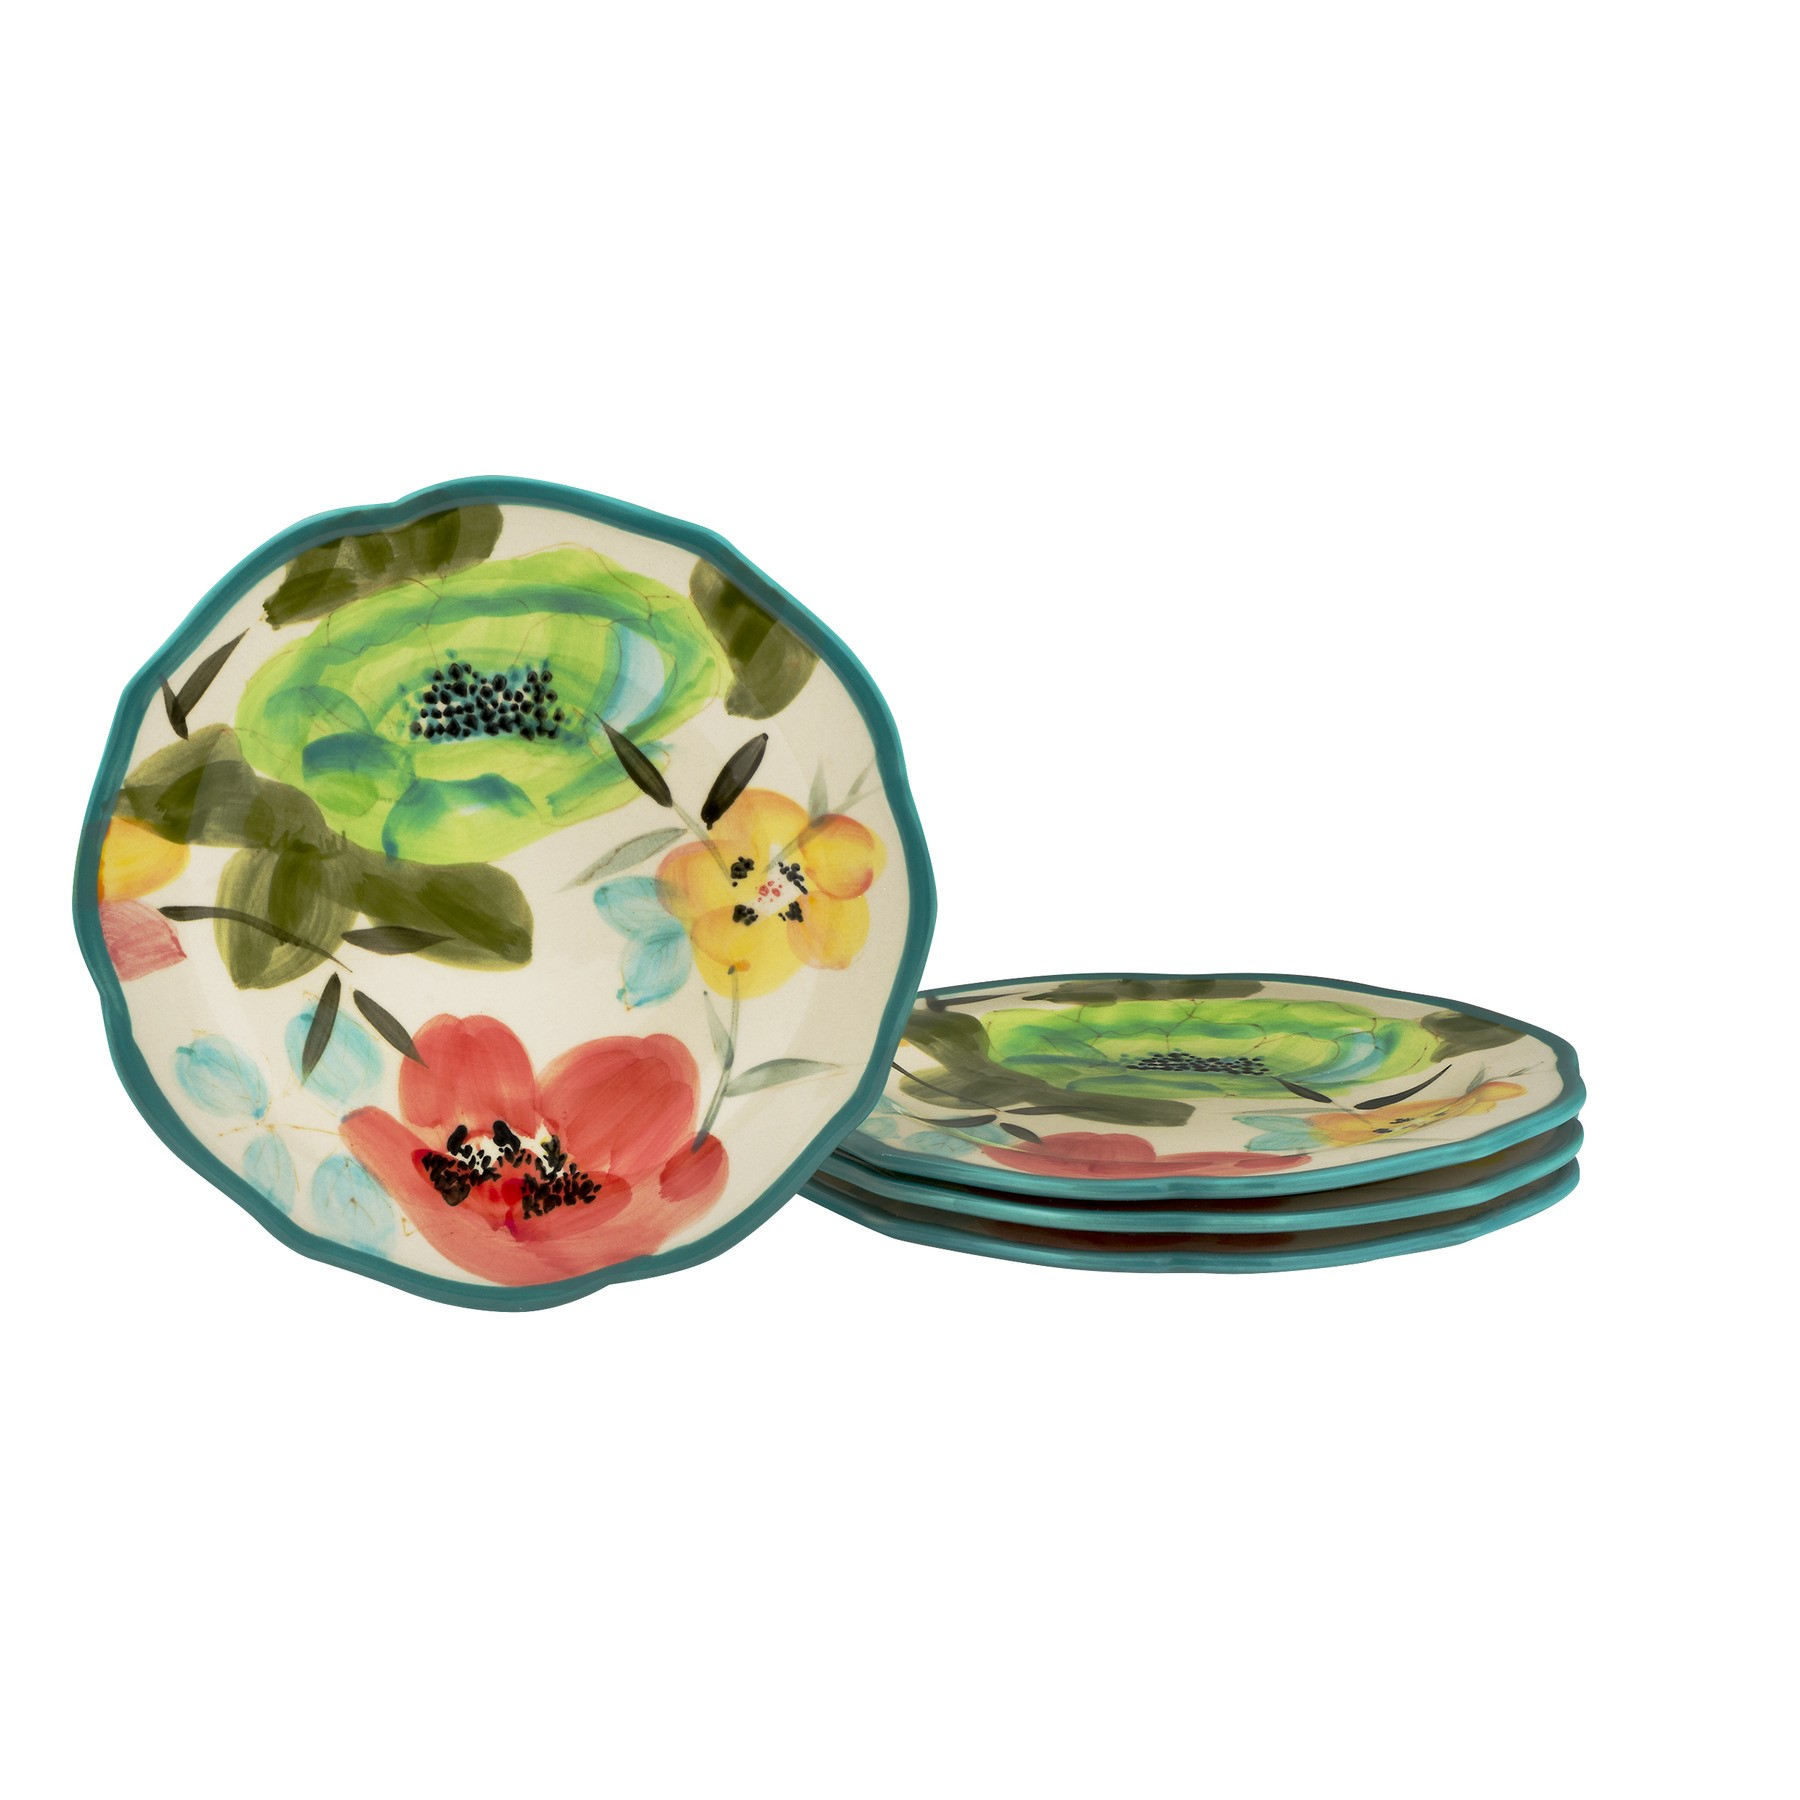 The Pioneer Woman Vintage Bloom Salad Plates - 4 PK, 4.0 PACK